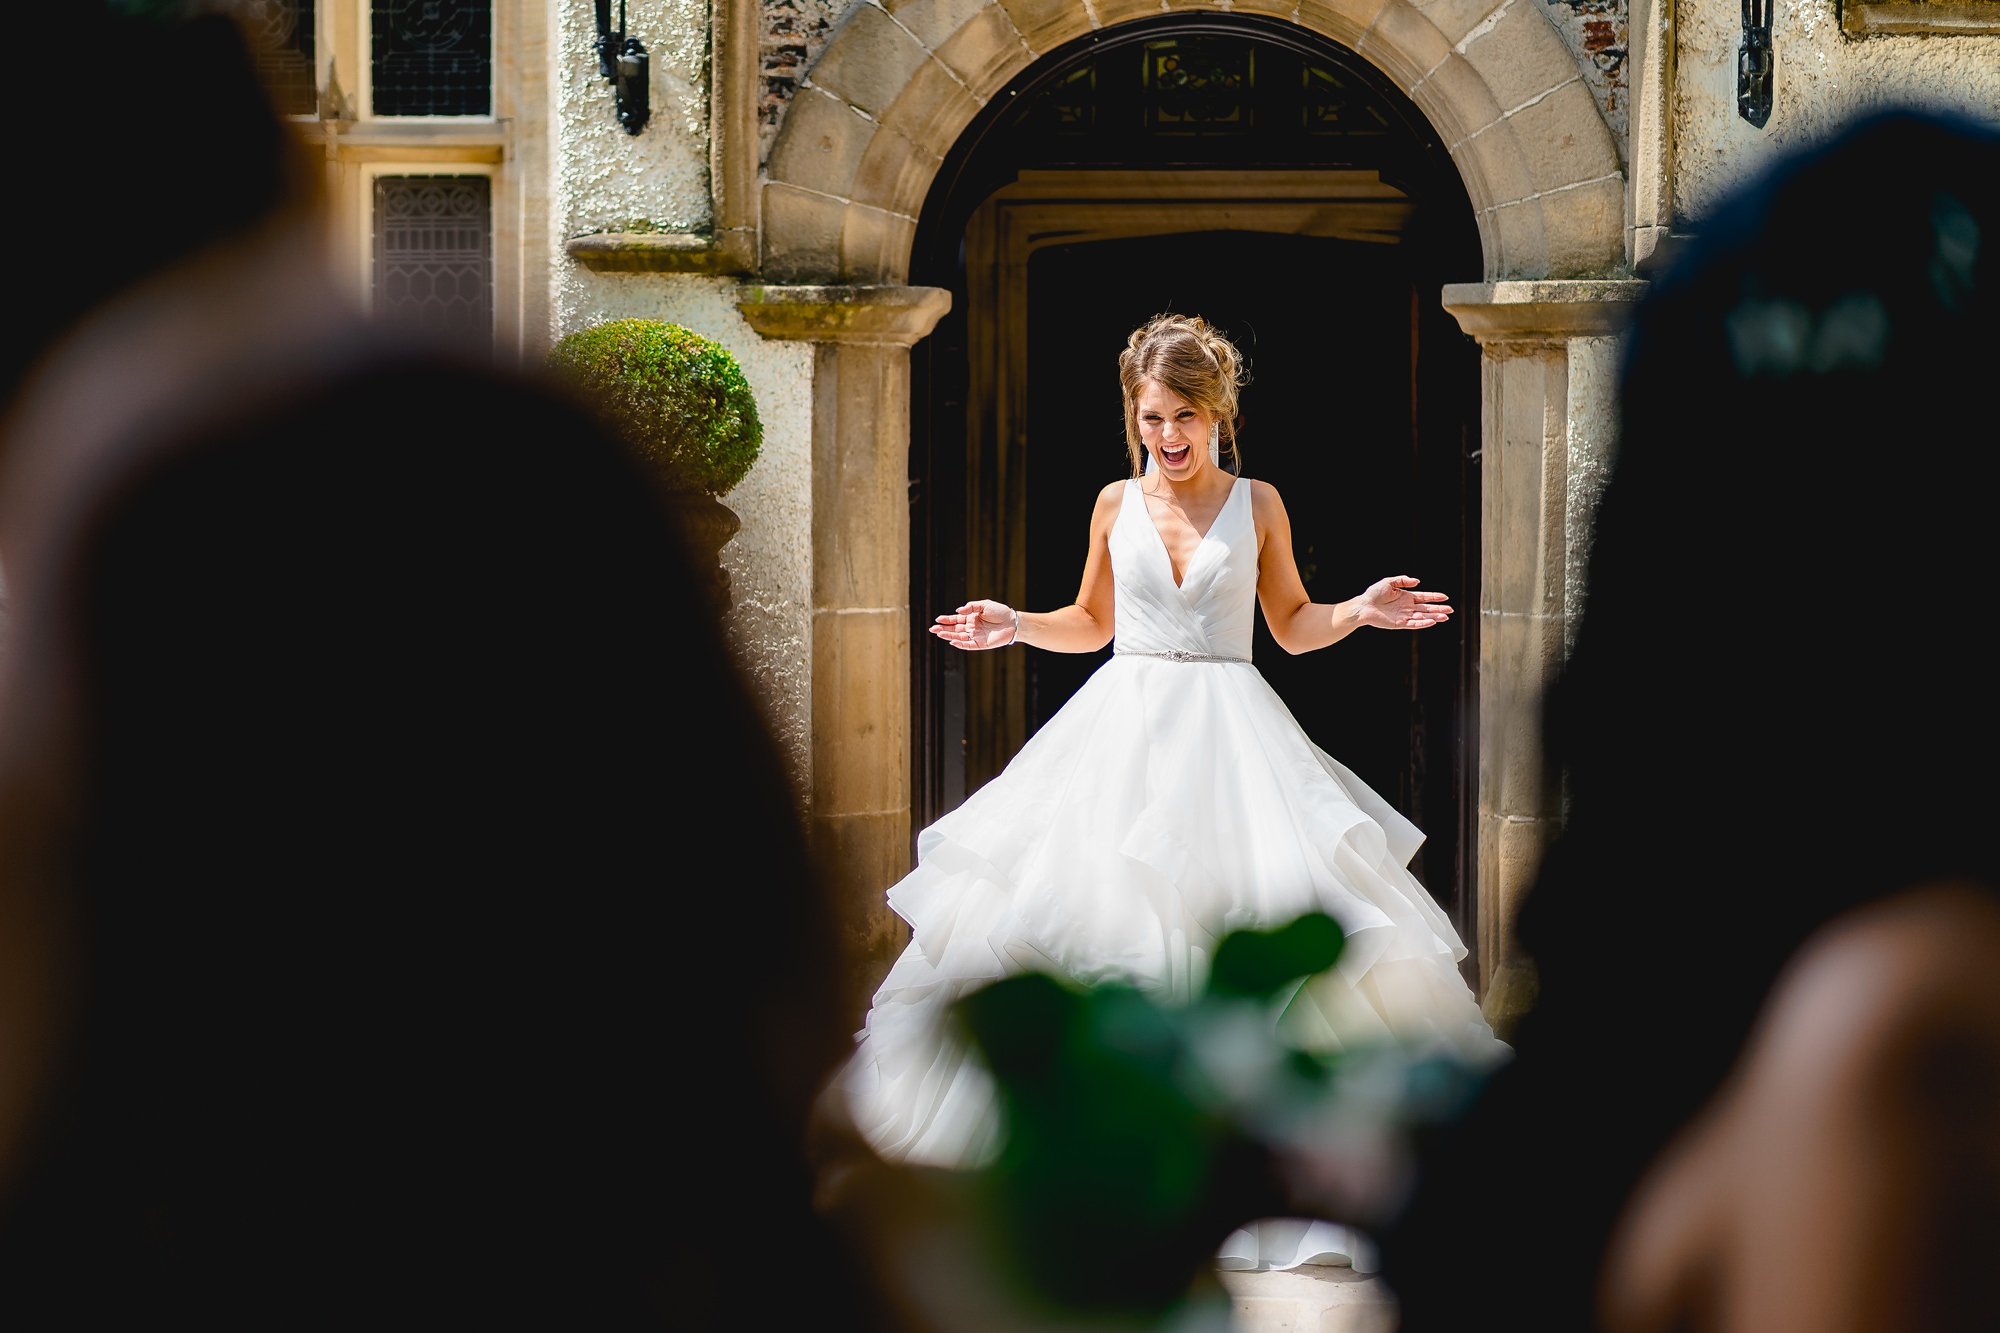 Mitton-Hall-Wedding-Photographer_0010-1.jpg